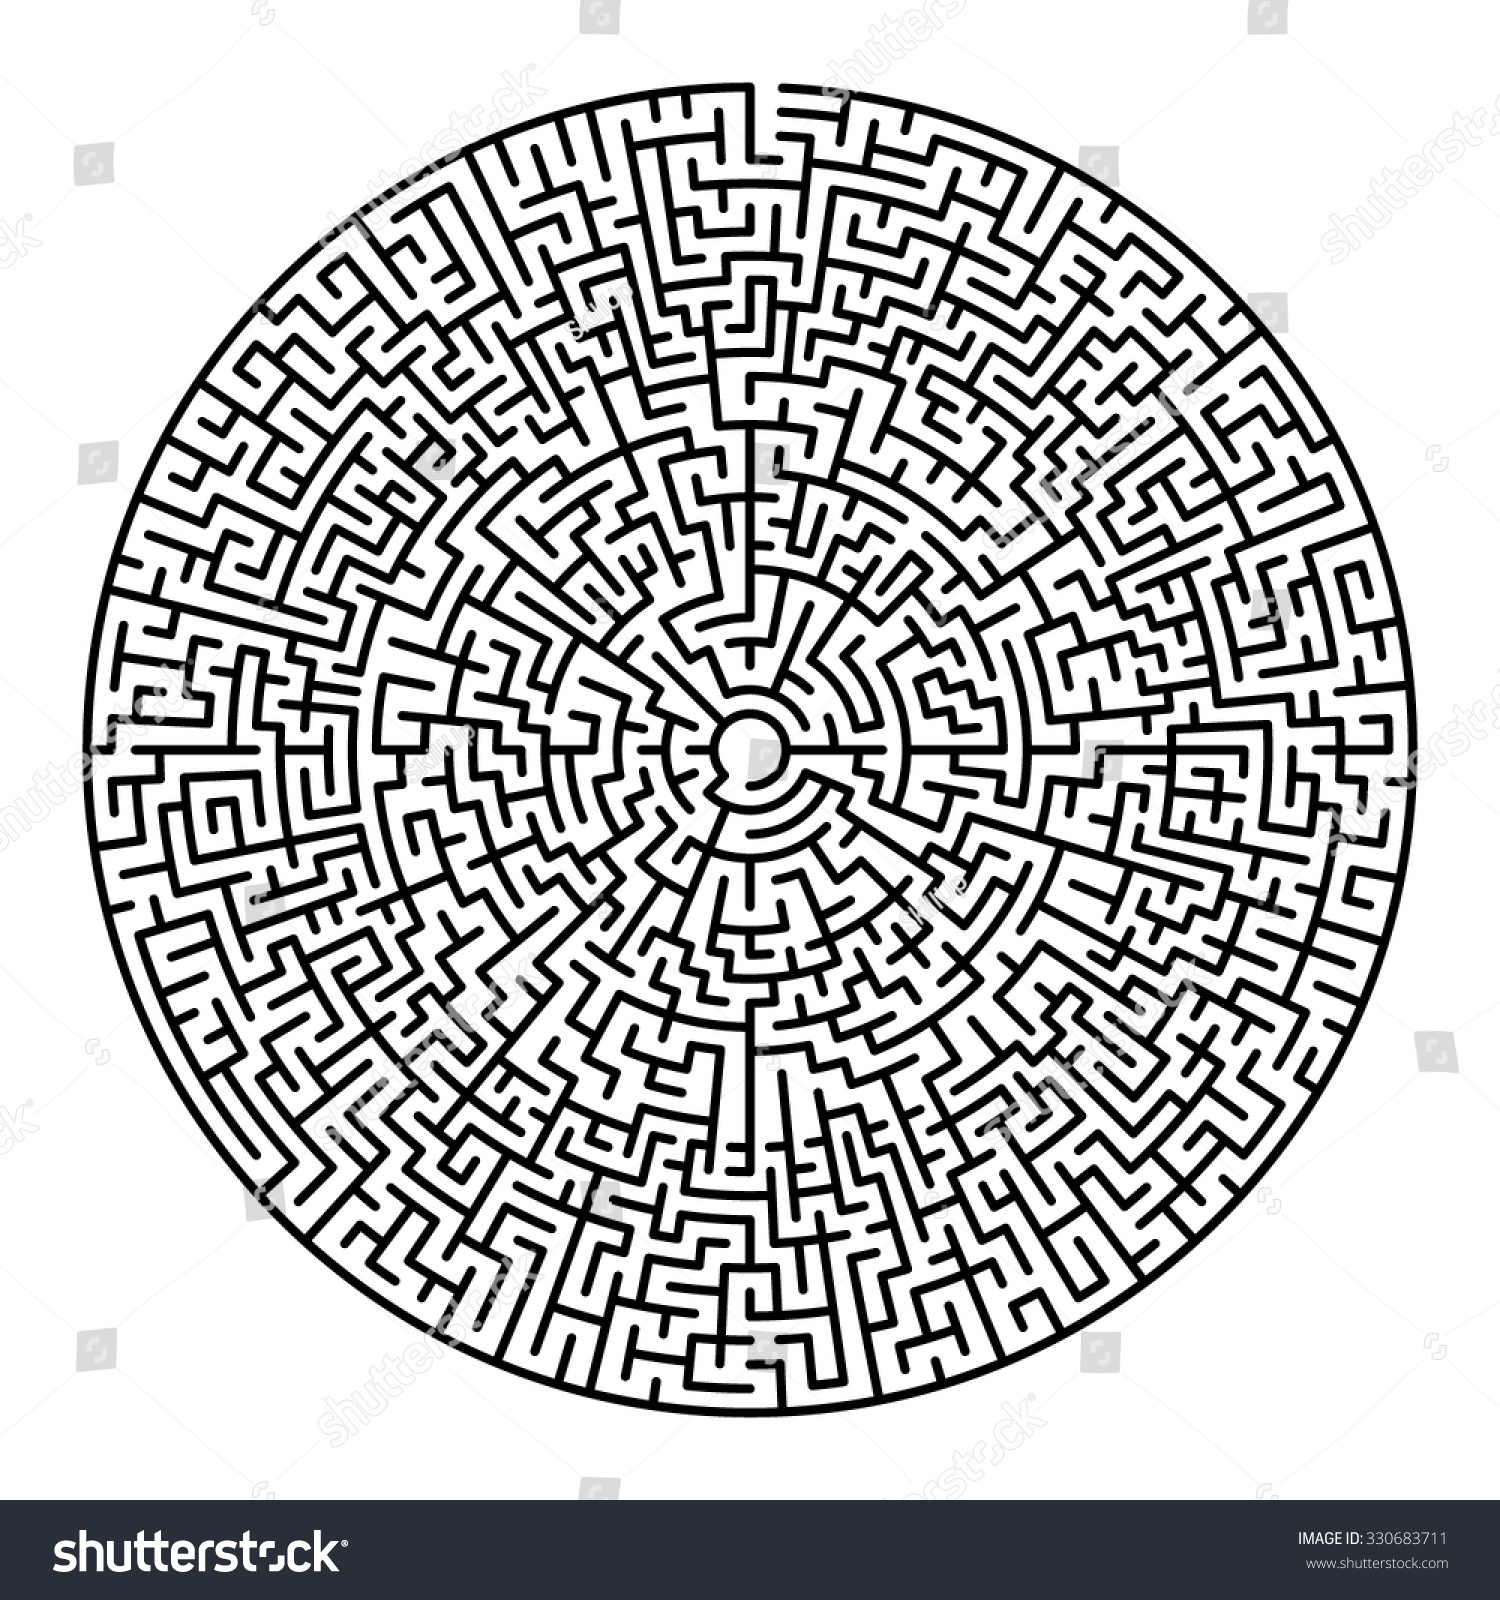 Labyrinth News Photos Wvphotos How To Make A Classical 5 Circuit From Meander Round Maze Entry Exit Find Stock Vector 330683711 With And The Way Out Concept Transportation